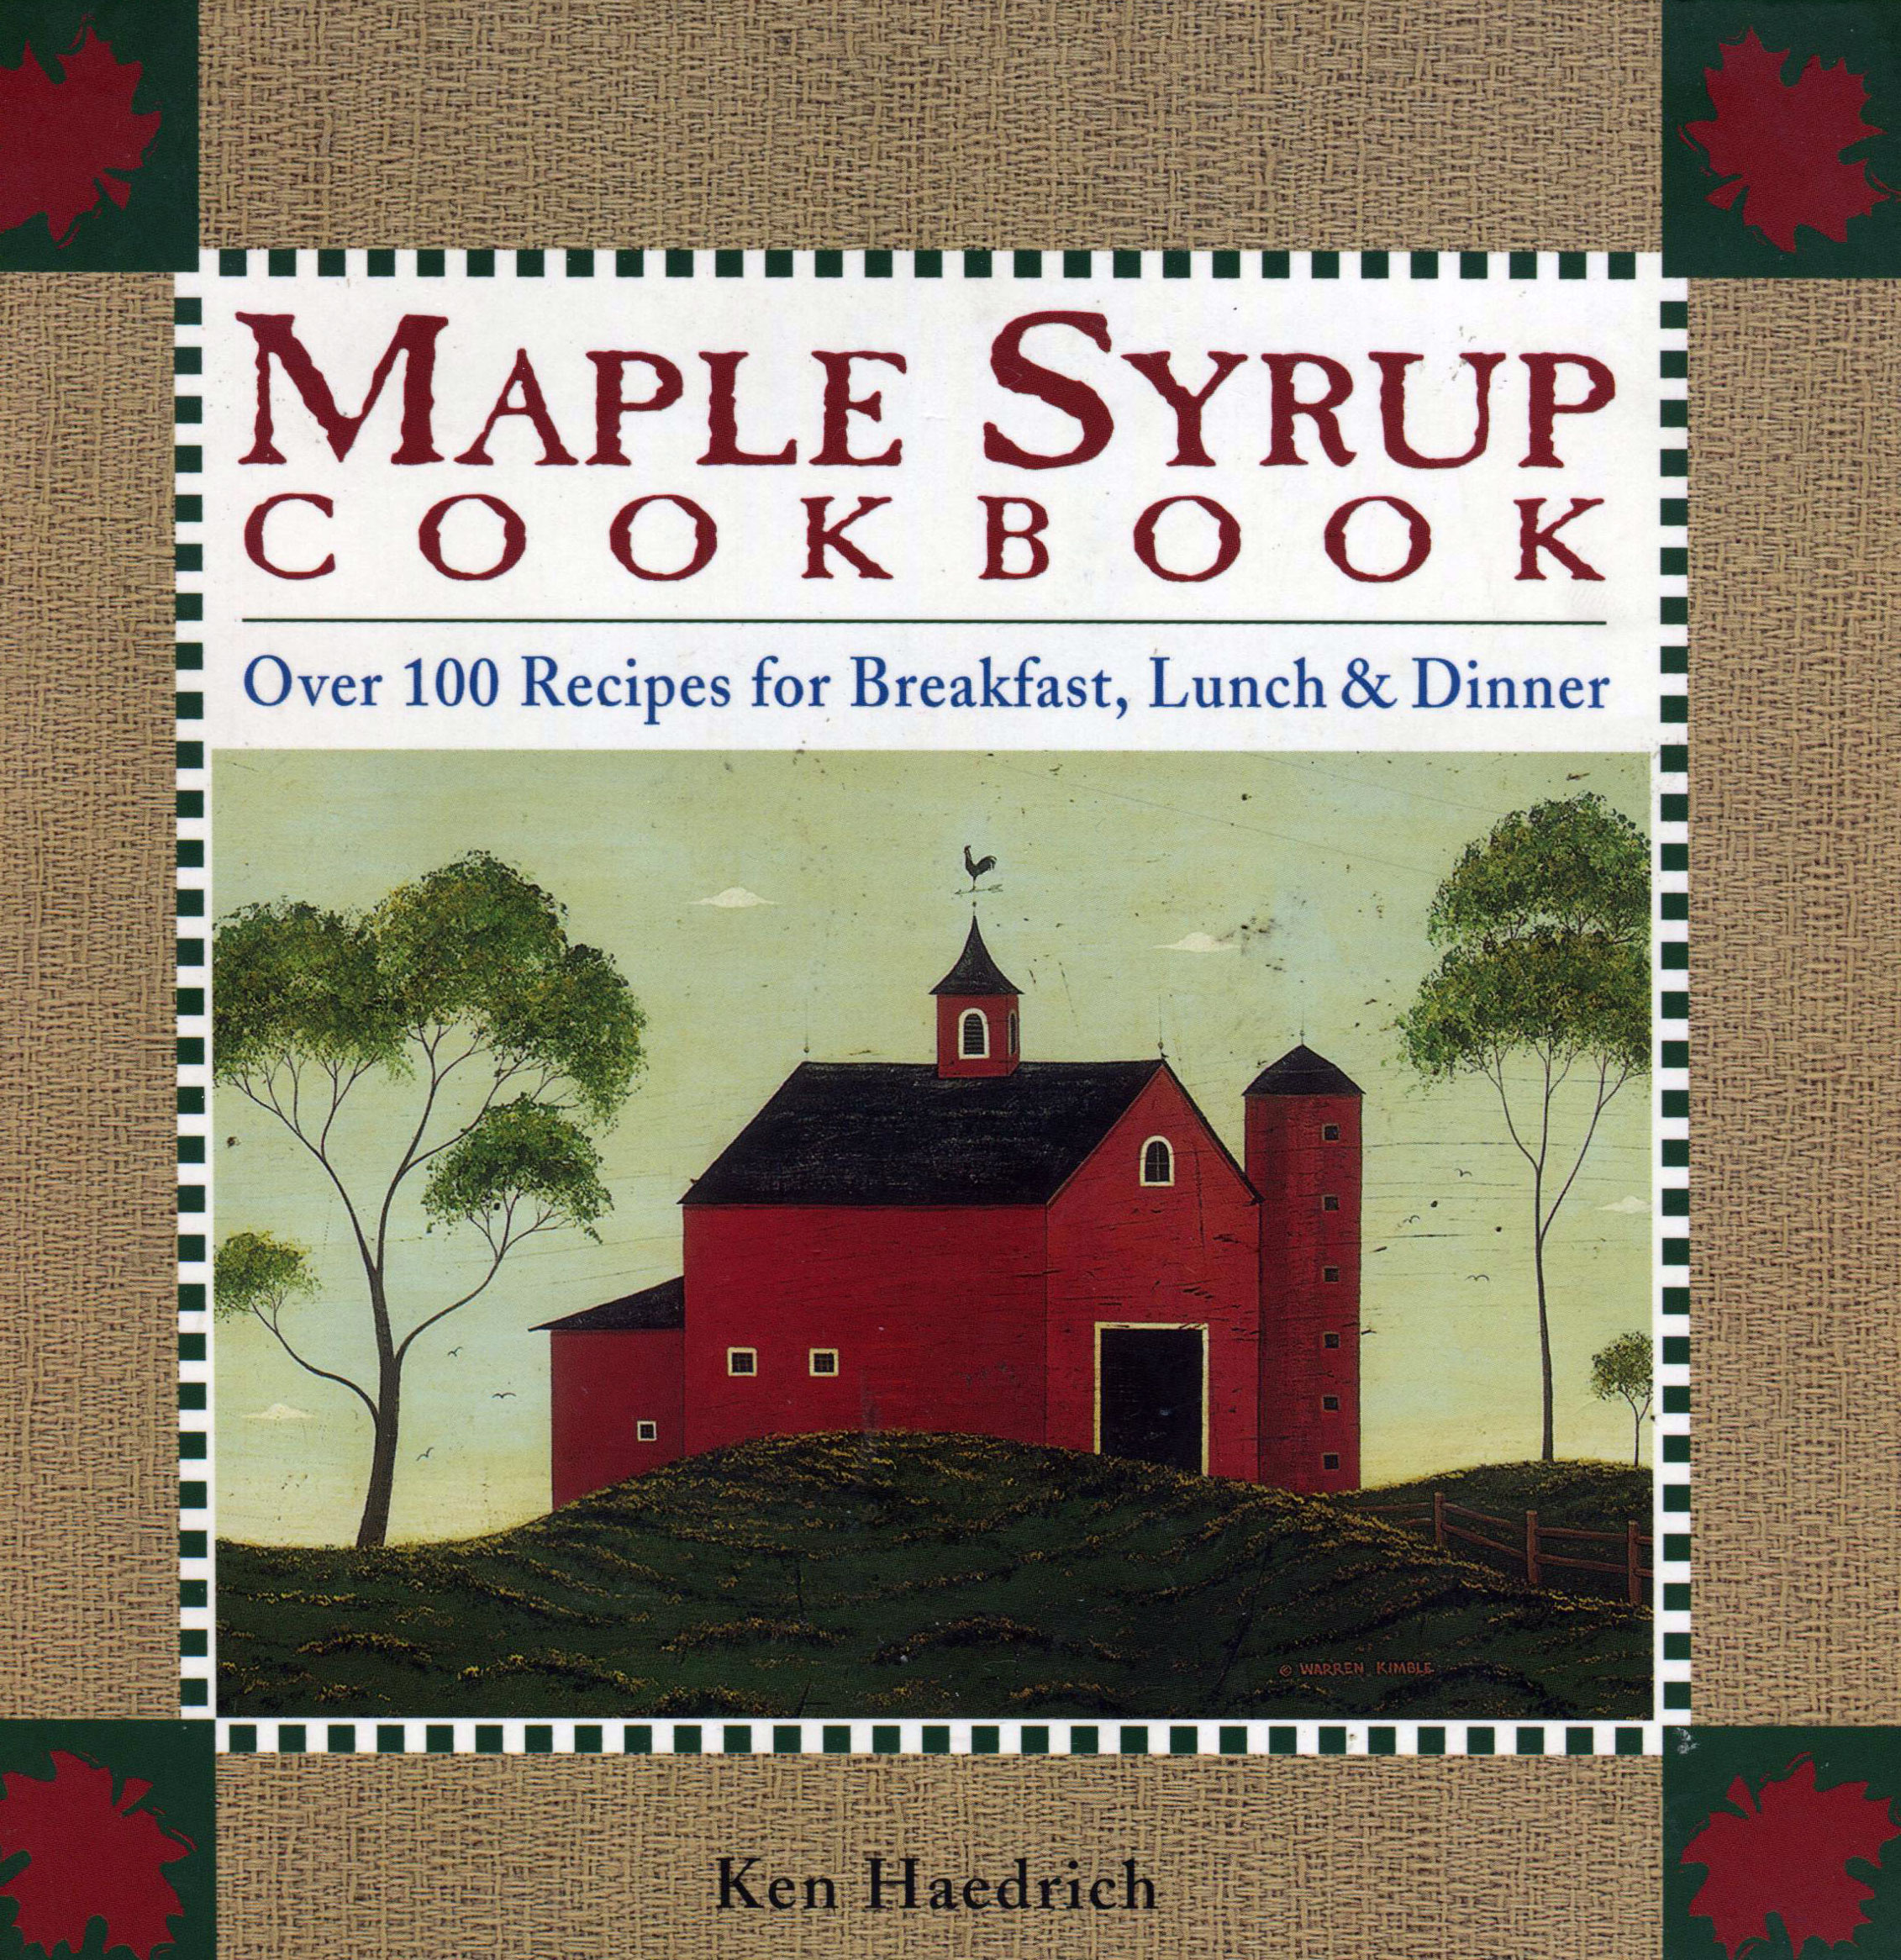 TBT Cookbook Review: Maple Syrup Cookbook by Ken Haedrich